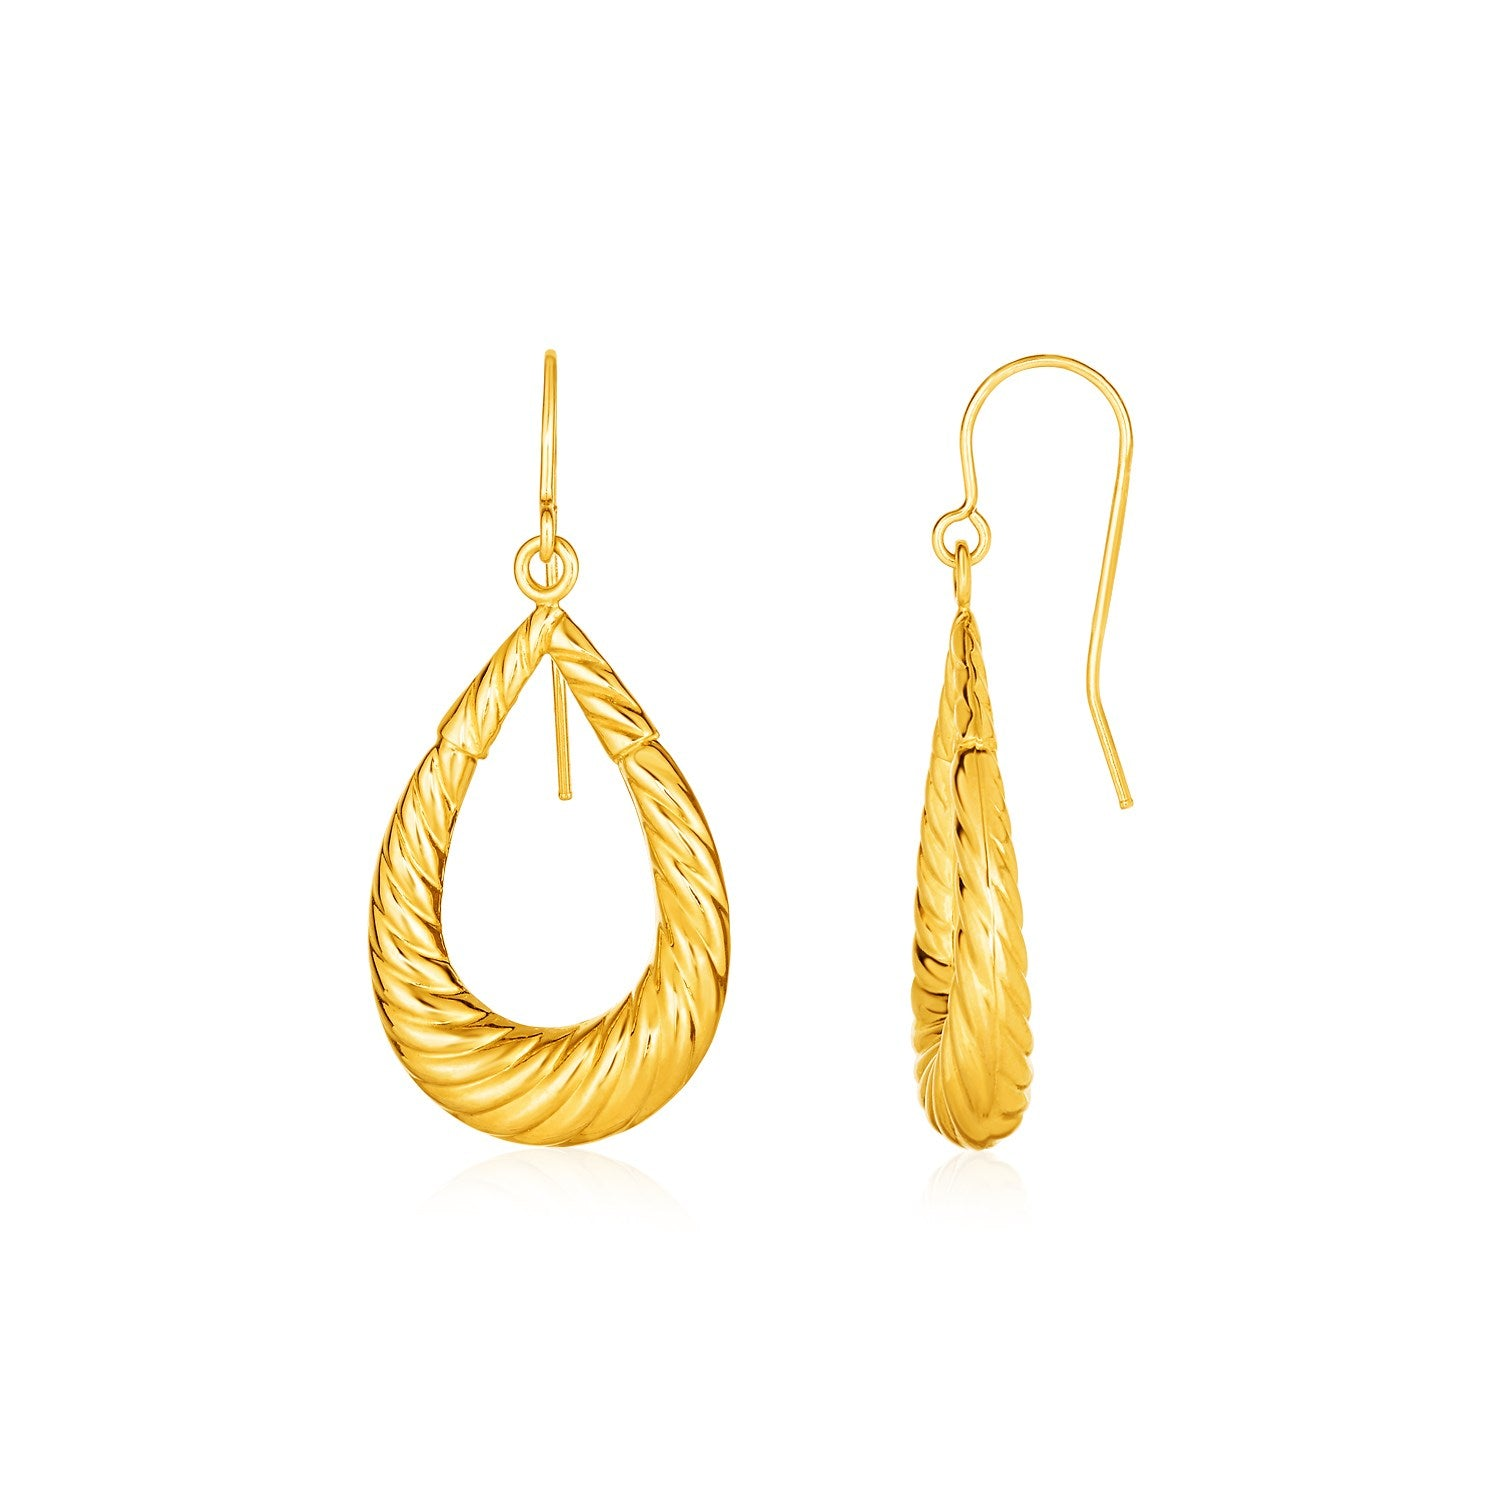 Open Ridged Teardrop Earrings in 10K Yellow Gold